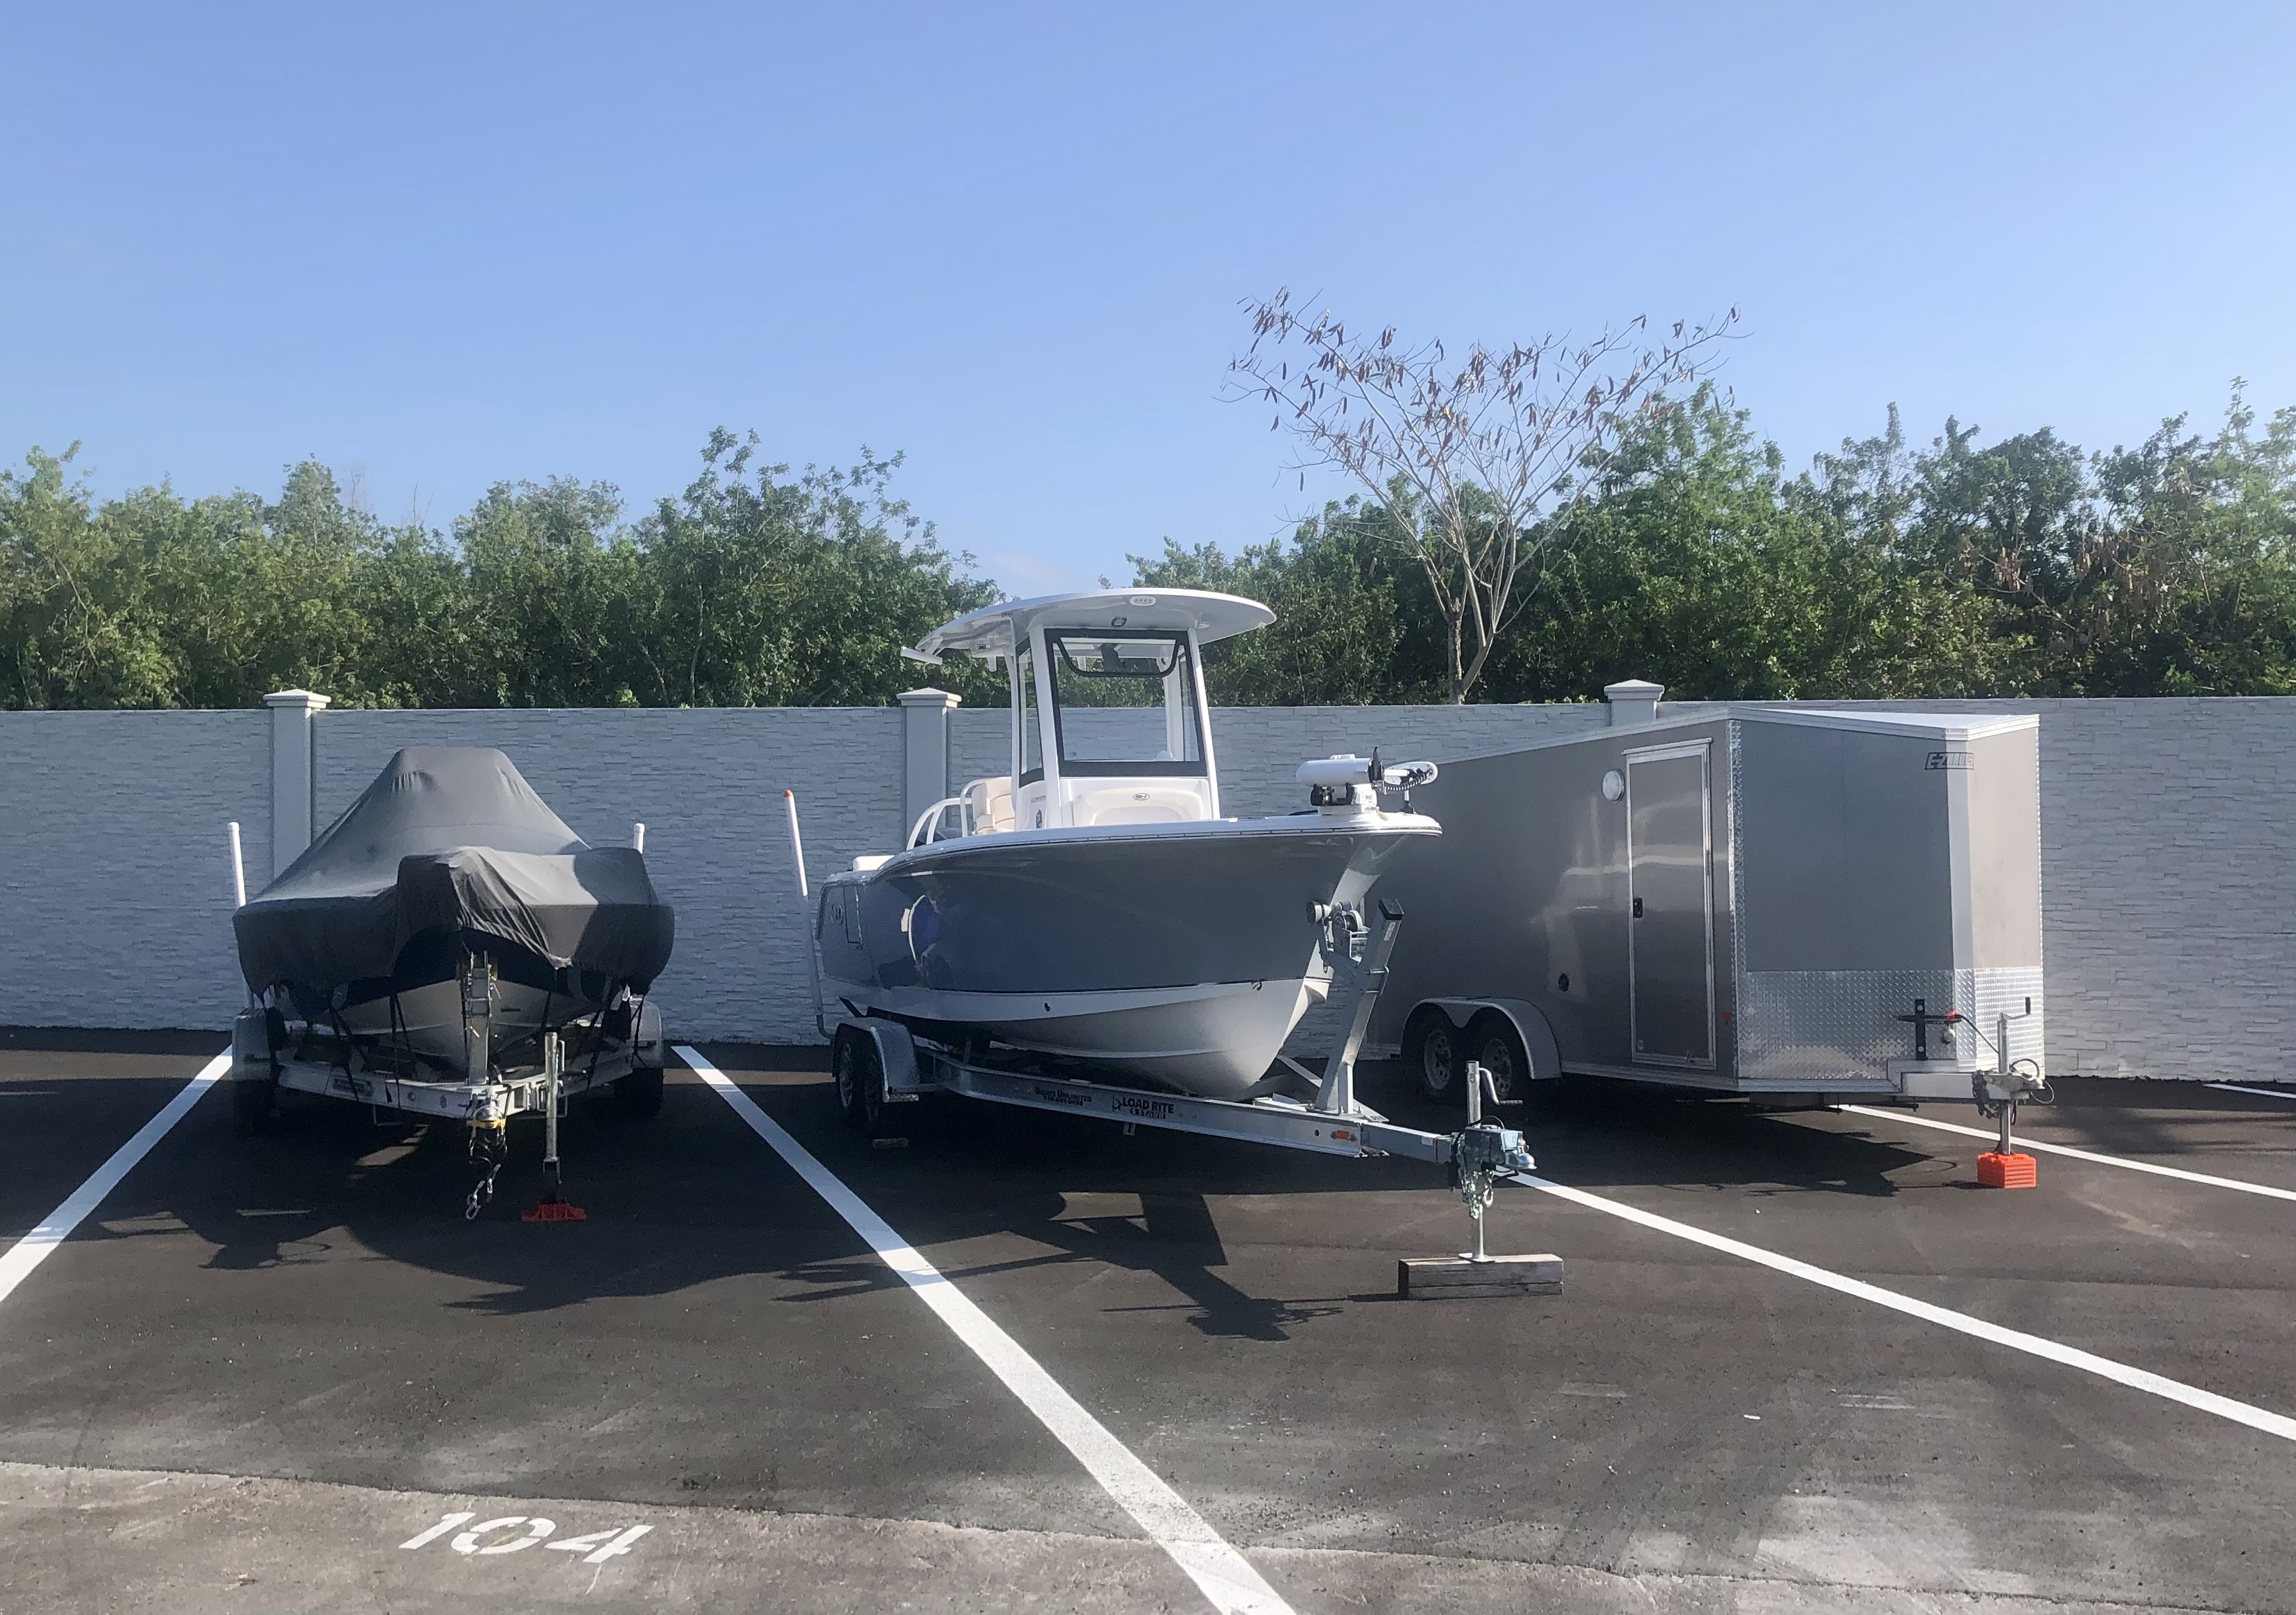 60 Degree Angled Parking Open RV Boat storage